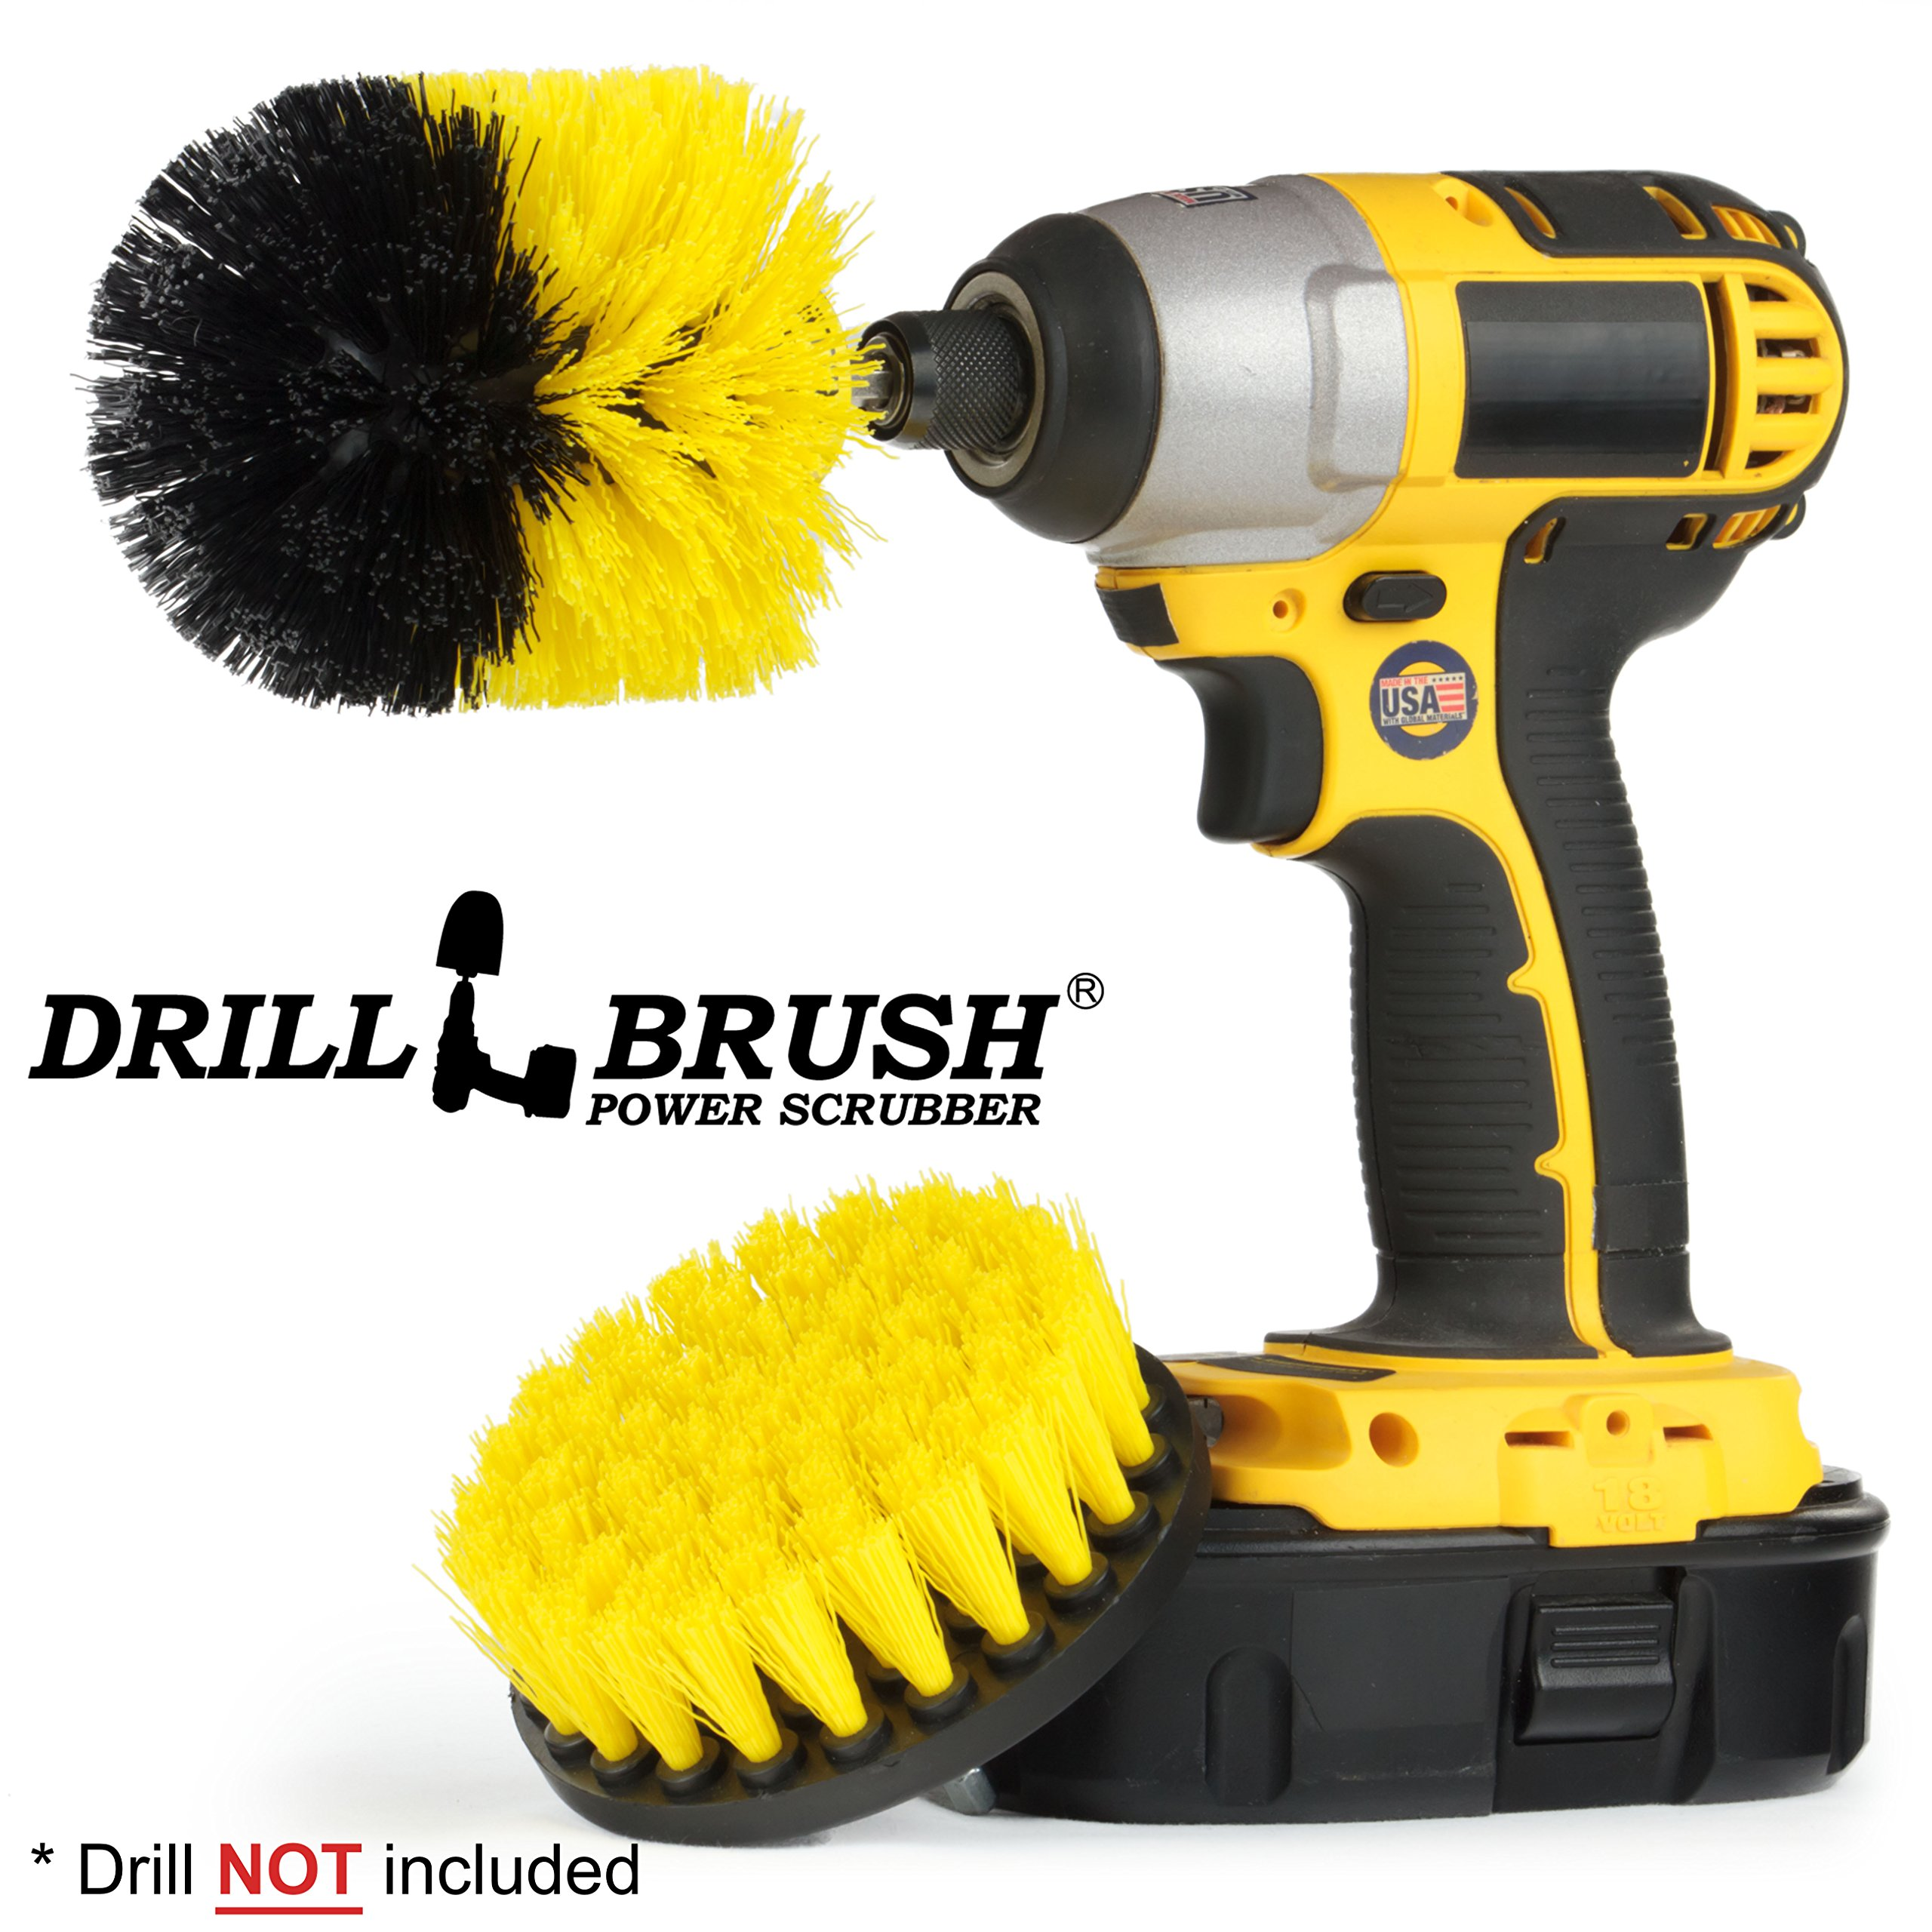 New Quick Change Shaft Shower, Tub, and Tile Power Scrubber Brush by Drillbrush